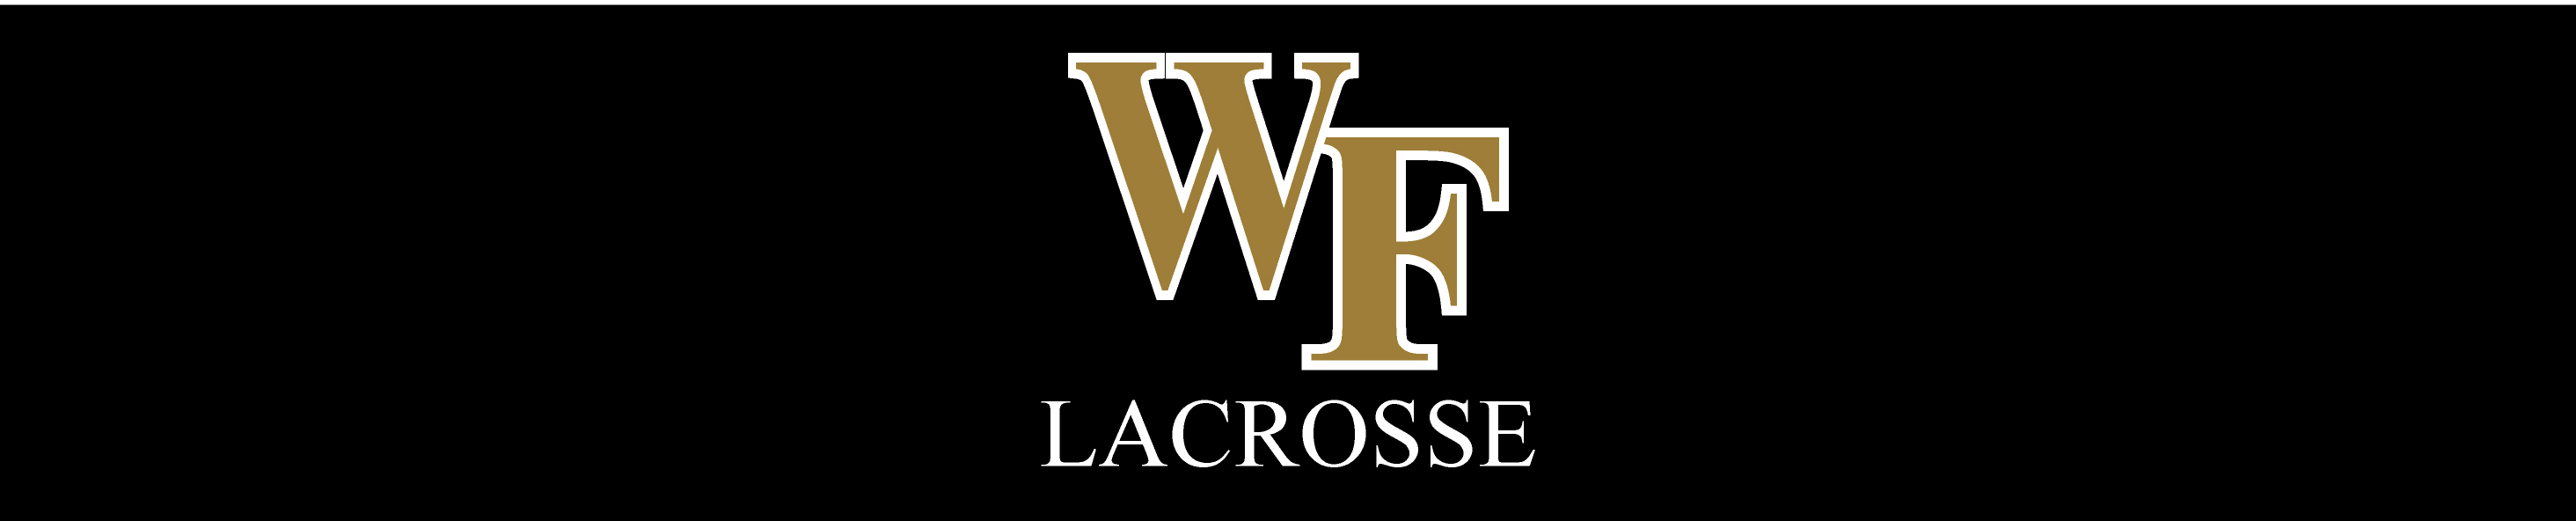 Wake Forest Lacrosse